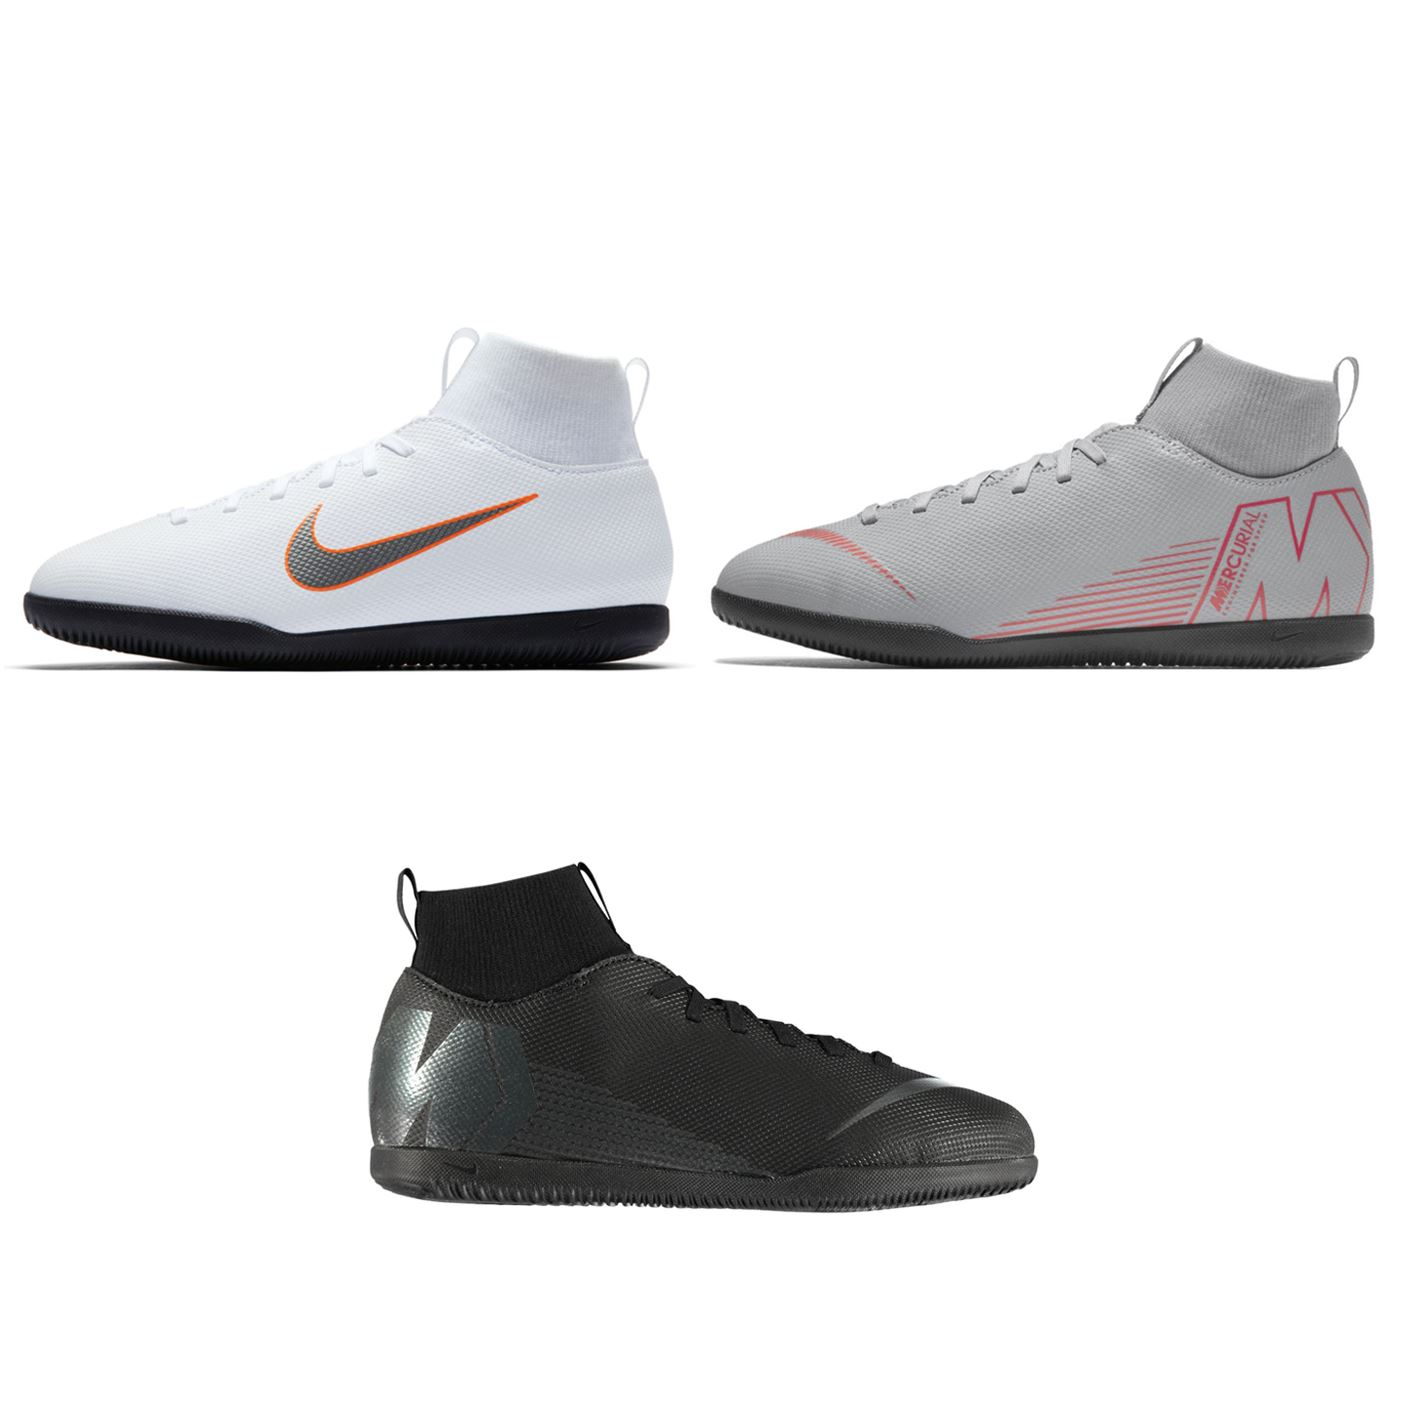 ... Nike Mercurial Superfly Club DF Indoor Football Trainers Juniors Soccer  Shoes ... 5ce6588ba9a